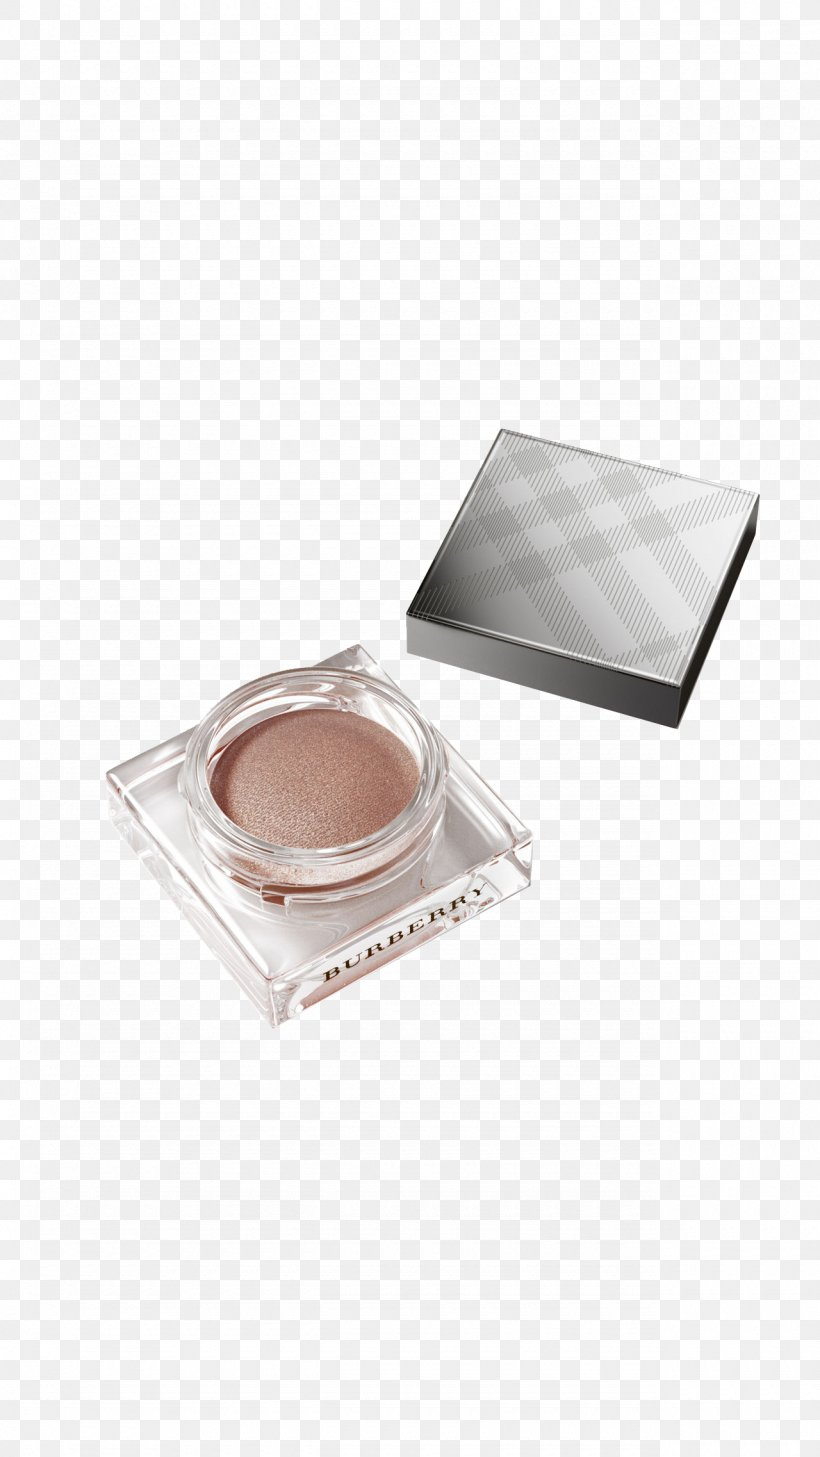 Cosmetics Eye Shadow Burberry Cream, PNG, 1280x2275px, Cosmetics, Beauty, Burberry, Color, Cream Download Free